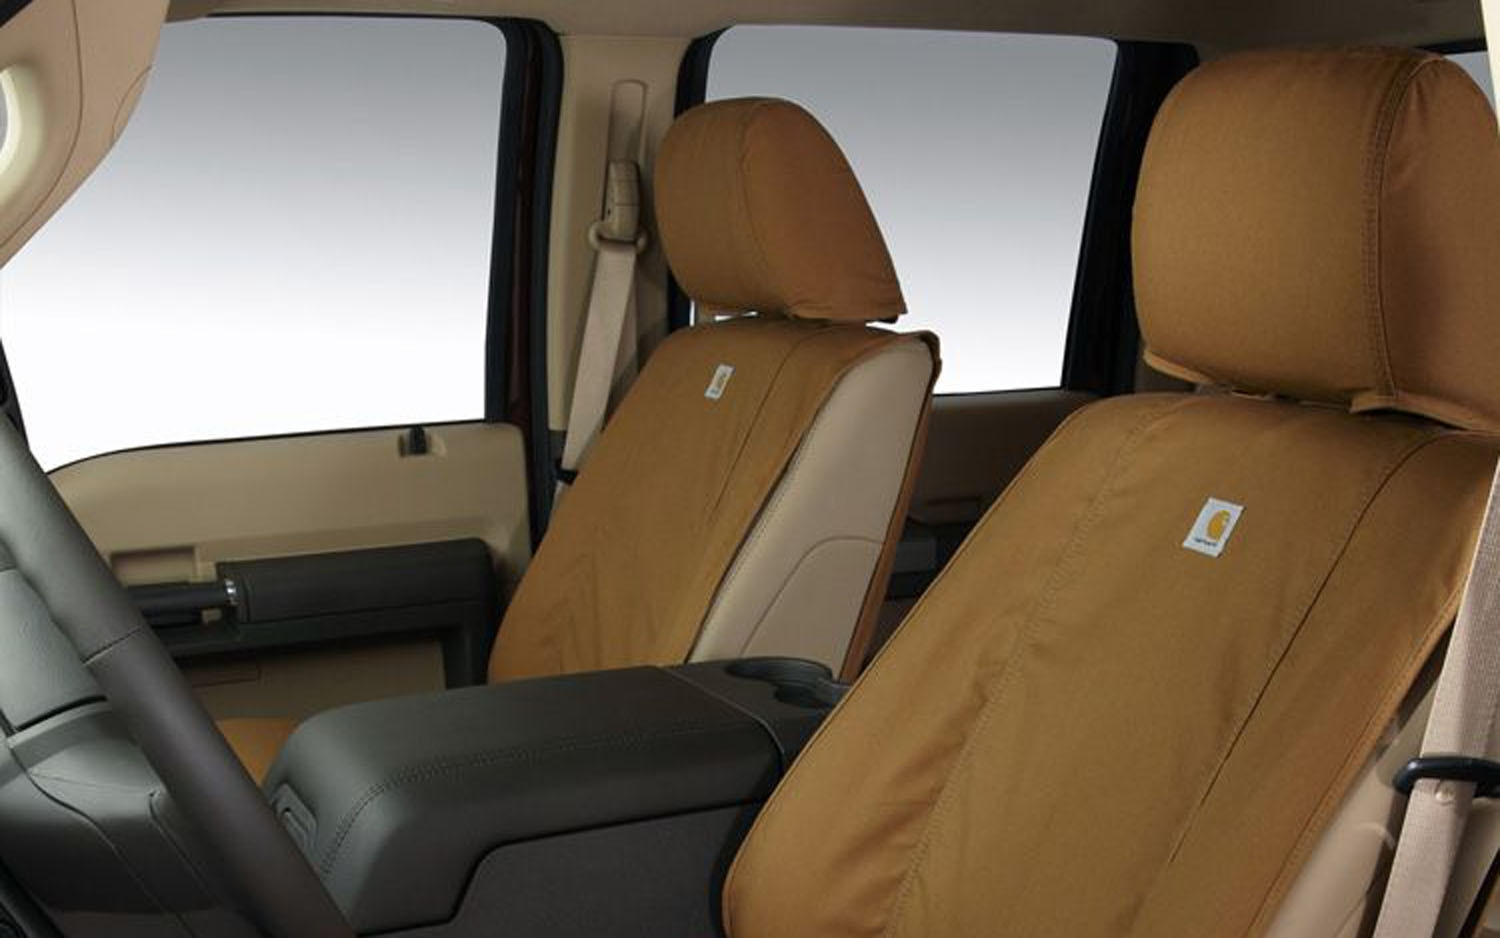 2011 Ford F150 Carhartt Seat Covers